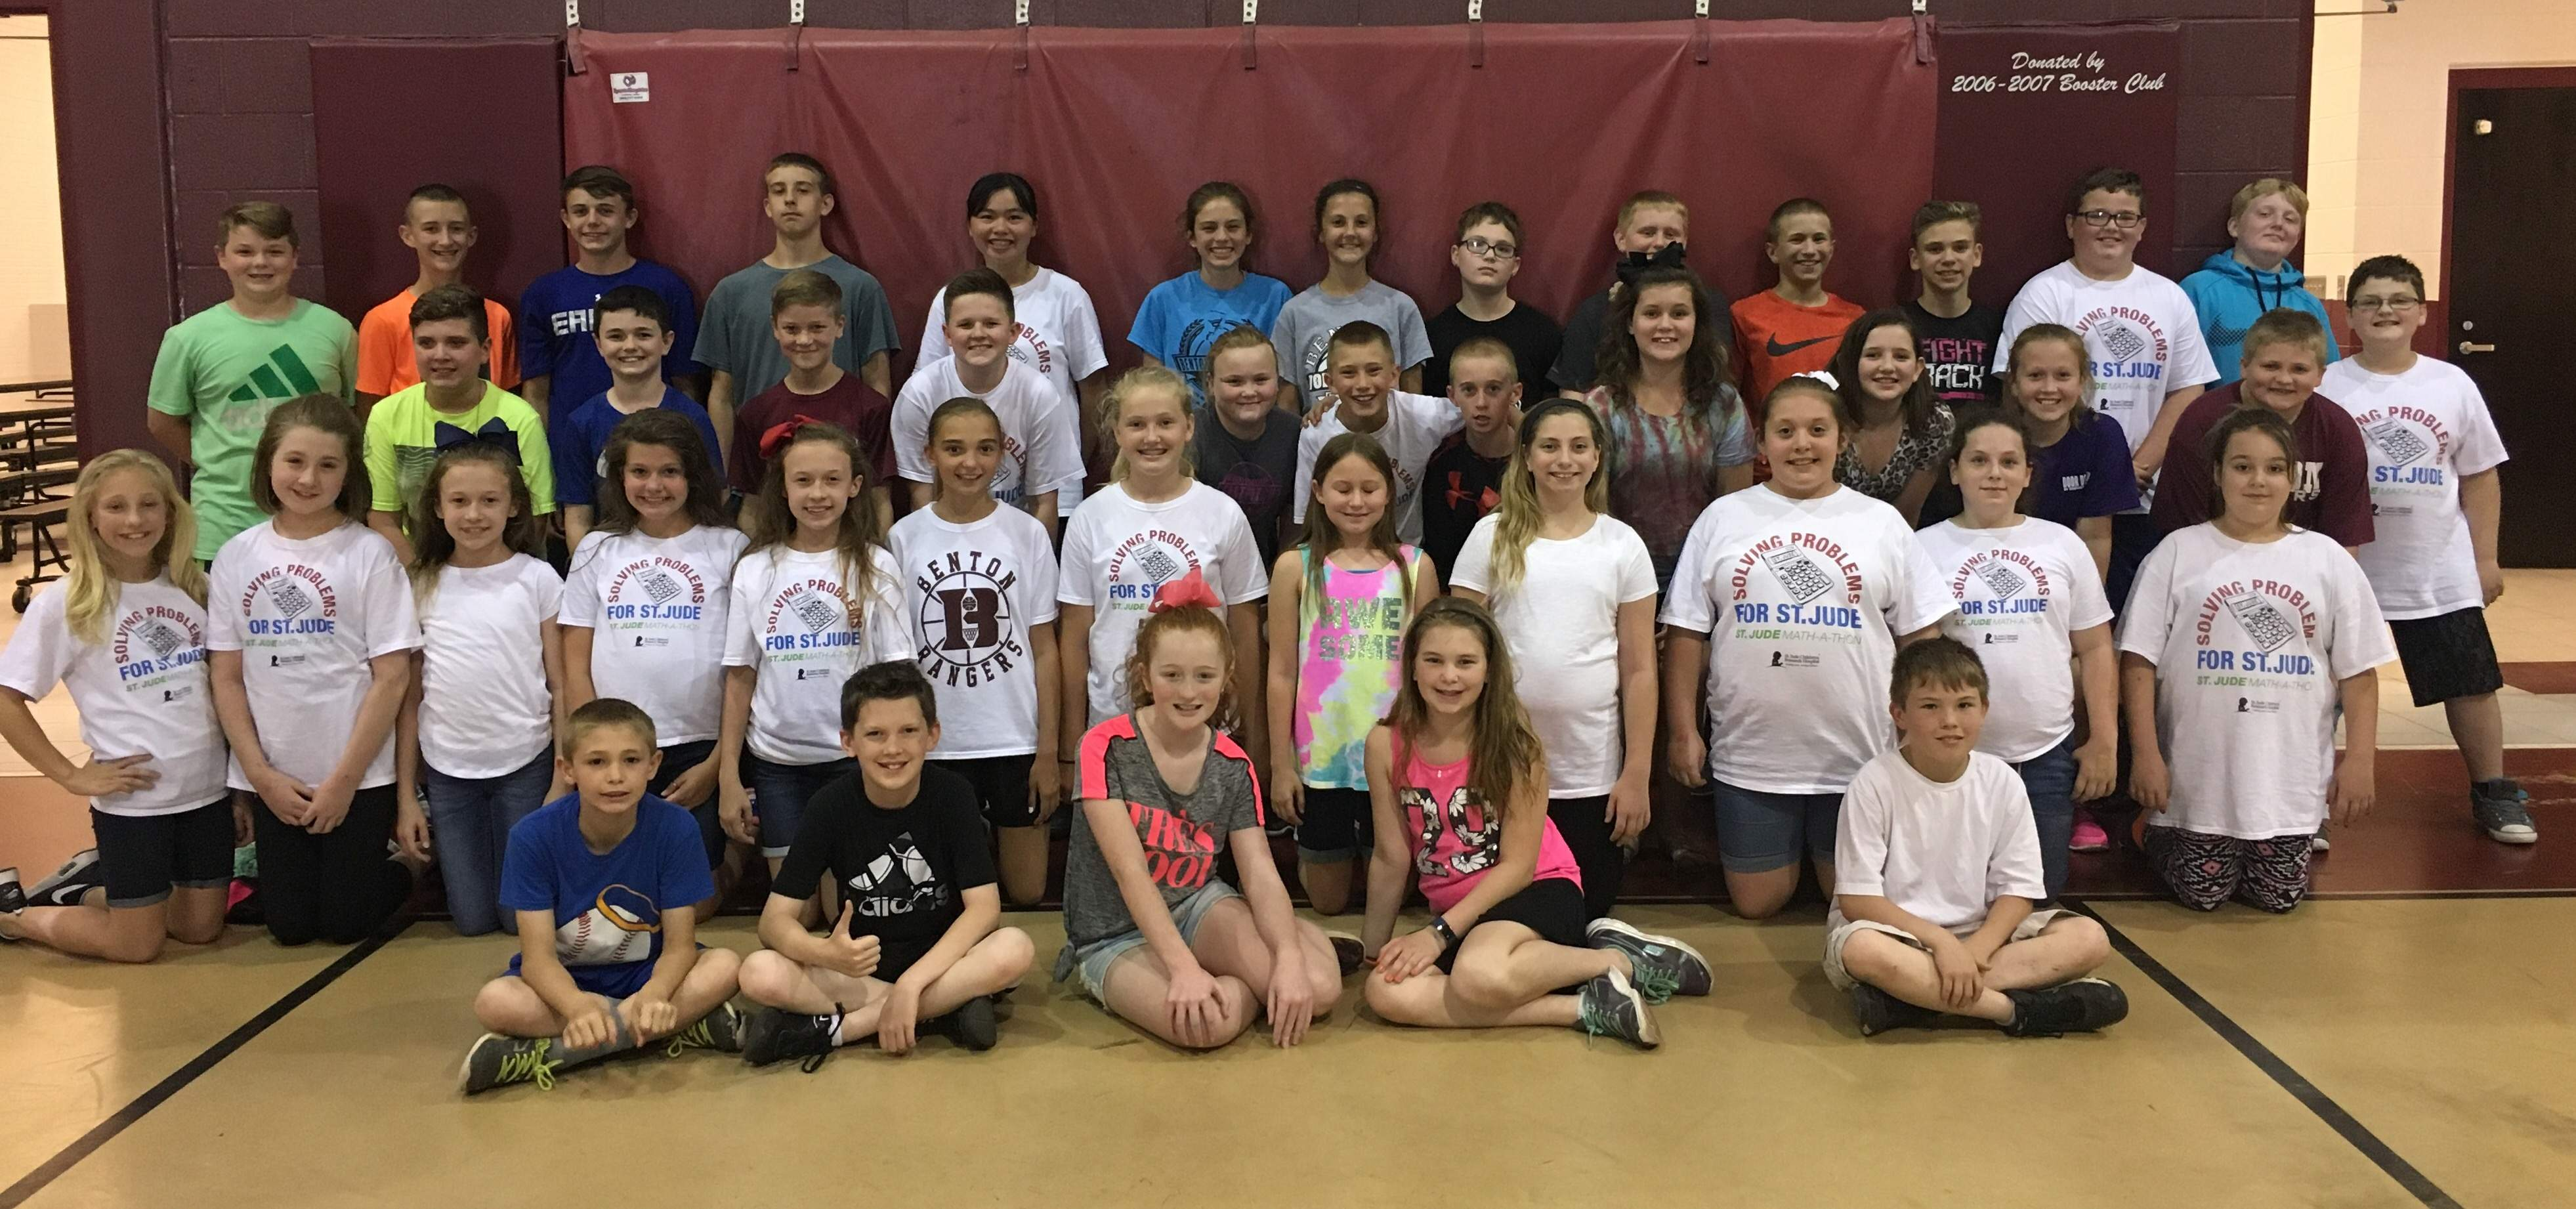 Some of Benton Grade School's top donors are (front row, left to right) Coleby Worley, Talon Stewart, Amelia Morris, Jacie Minor, Justin Martin, (second row) Brooklyn Frailey, Emma Bacon, Sydnie Lampley, Ashlyn Lampley, Sophie Lampley, Emma Milby, Addi Krueger, Alyssa Dodd, Riley Mize, Abby Welch, Gabby Webb, Kortney Wright, (third row) Joey Copple, Luke Melvin, Roman Rechsteiner, Jace Melvin, Hannah Cardwell, Lane McCollum, Lance Jerkins, Shelby McClerren, Jaysa Hinman, Ava Groves, Eli Jennings, Morgan Hutchcraft, (top row) Jacob Kinsman, Cy Norman, Chase Johnston, Christian Betterton, Demi Ren, Emma Blondi, Emma Calcaterra, Jayson Conklin, Gaige Kinkade, Gaven Agnitsch, Ramie Burlison, Blake Hampton and Lucas Tiberend.